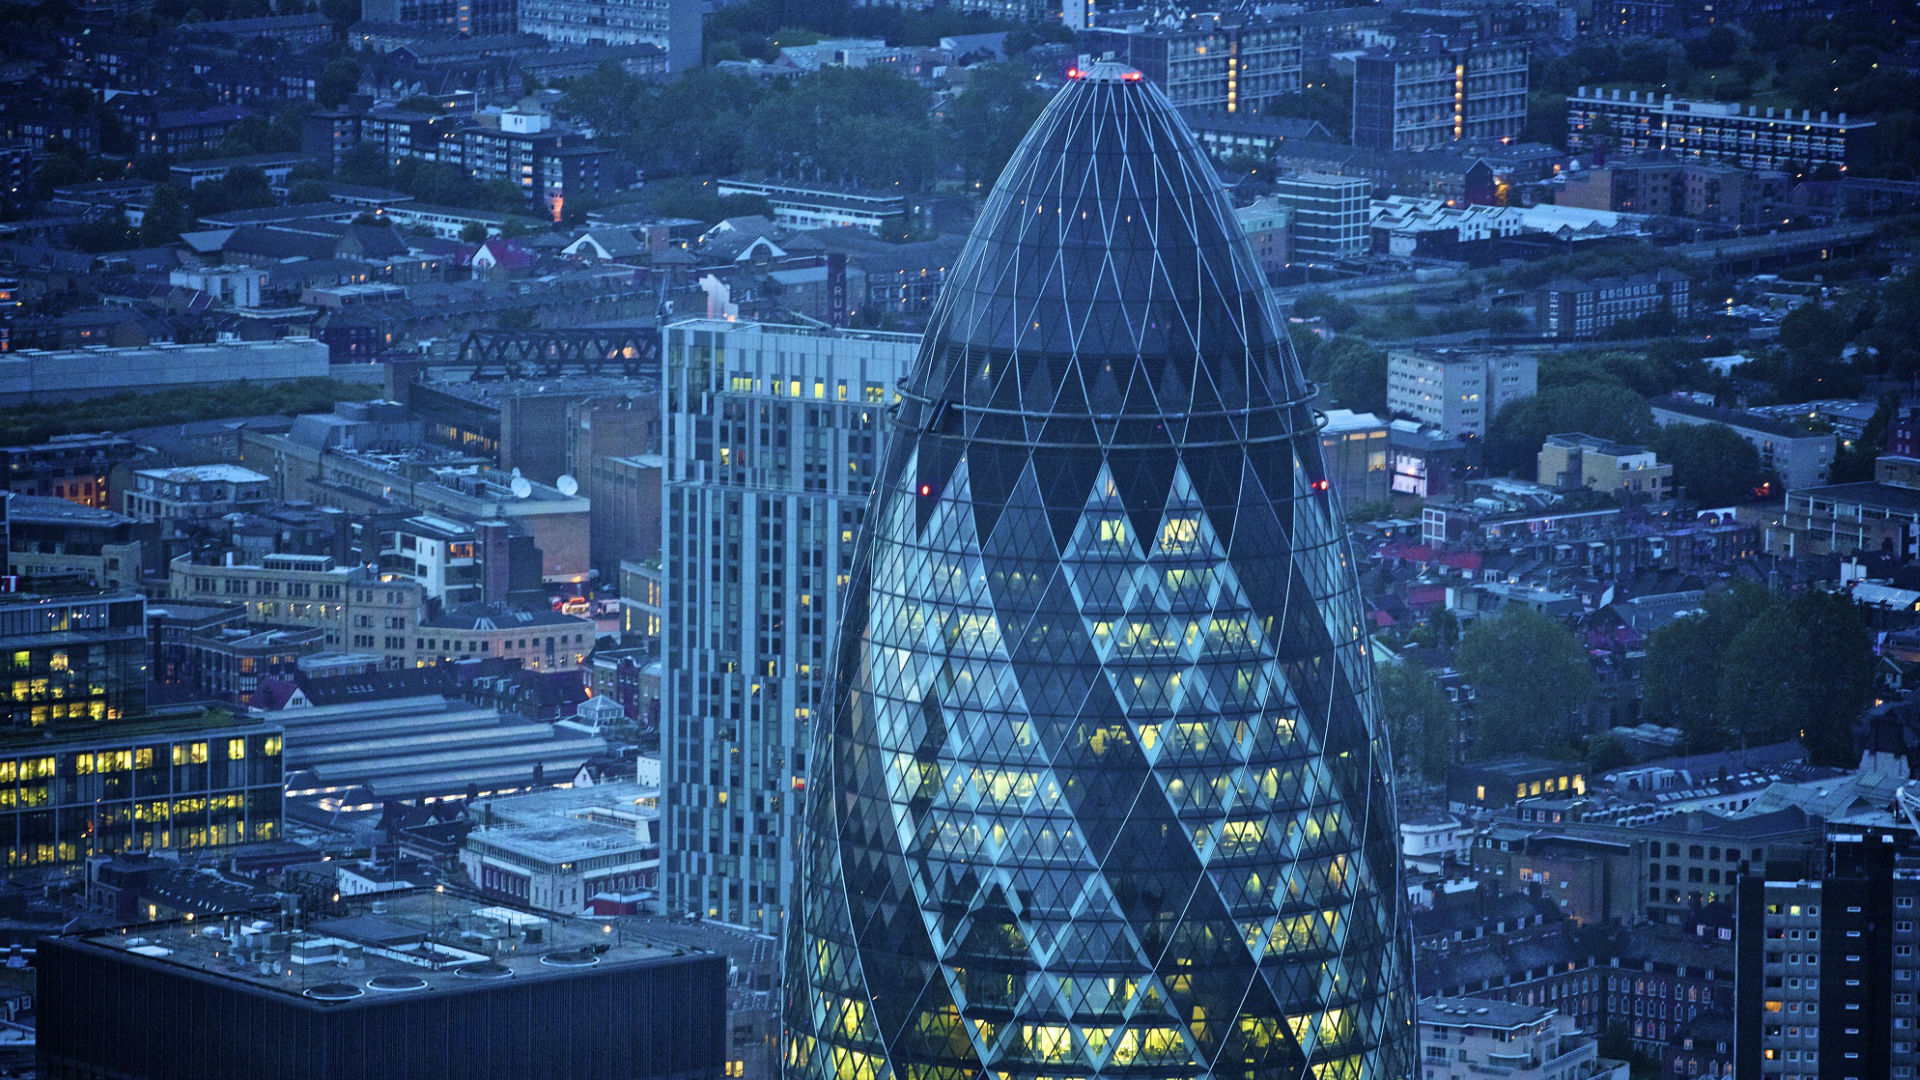 An aerial shot of The Gherkin and the City of London lit up at night. © petewebb.com/London and Partners